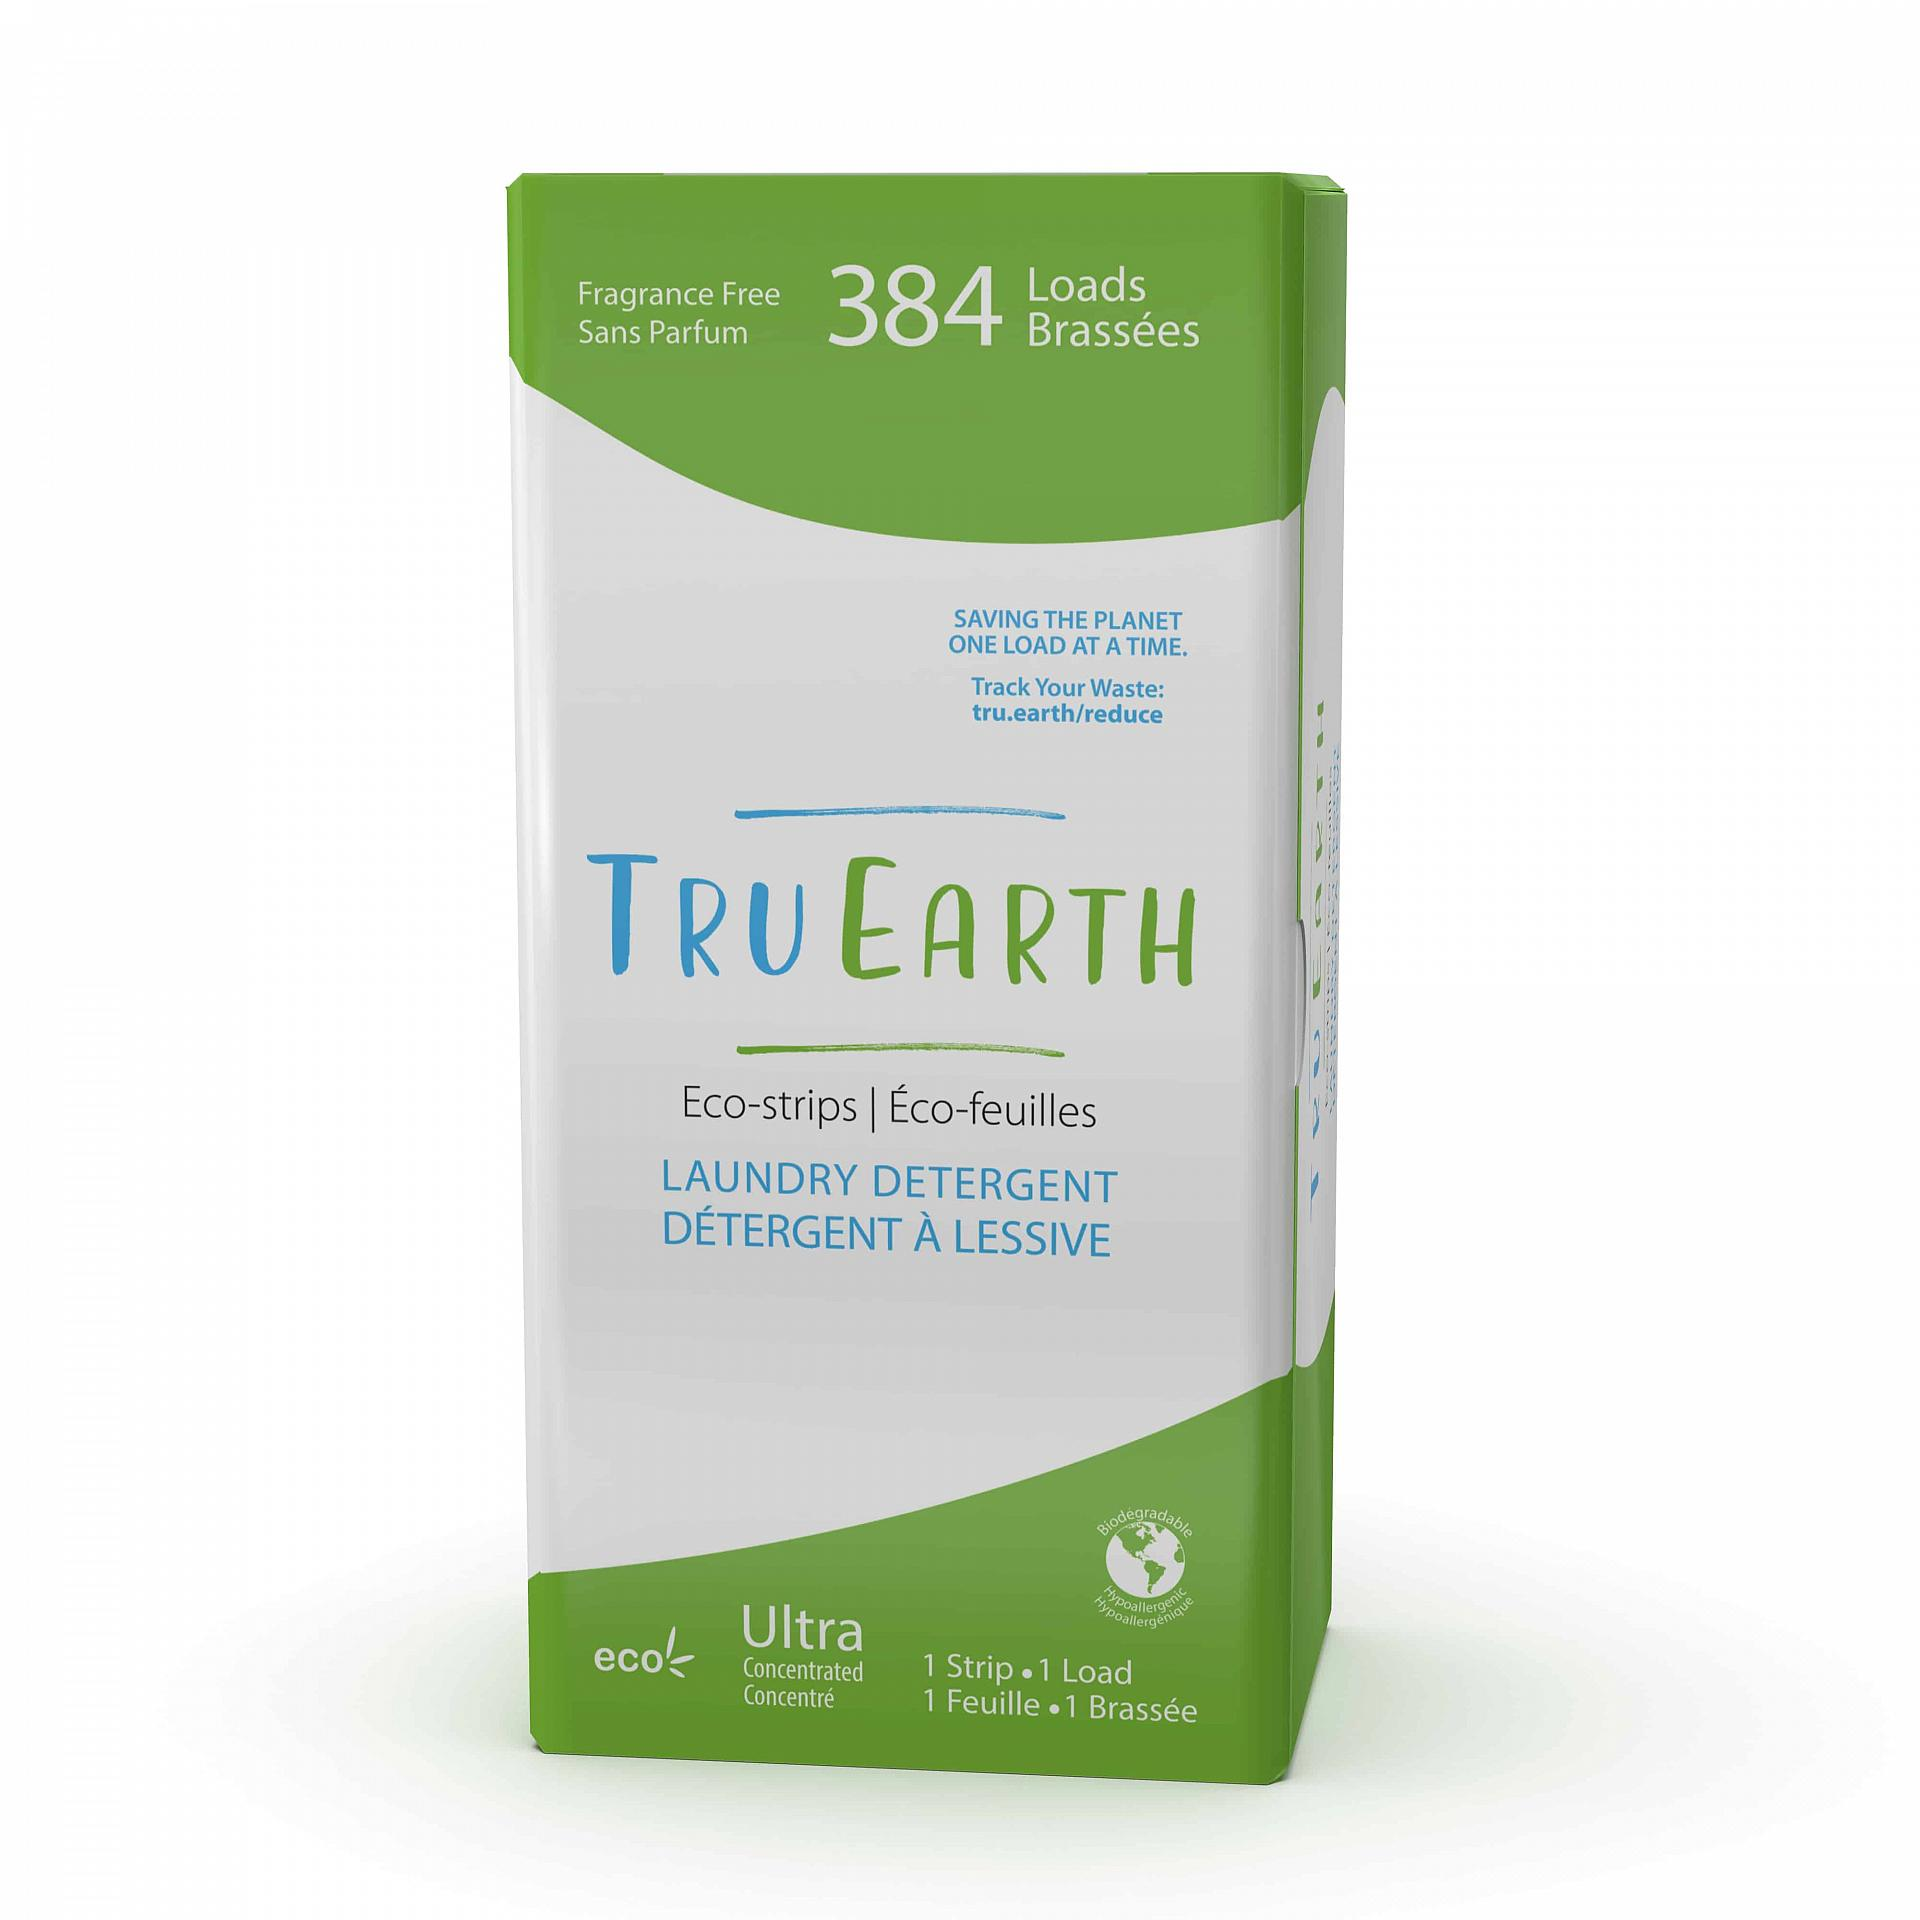 Tru_Earth_Eco_strips_Laundry_Detergent_fragrance_free_384_Loads